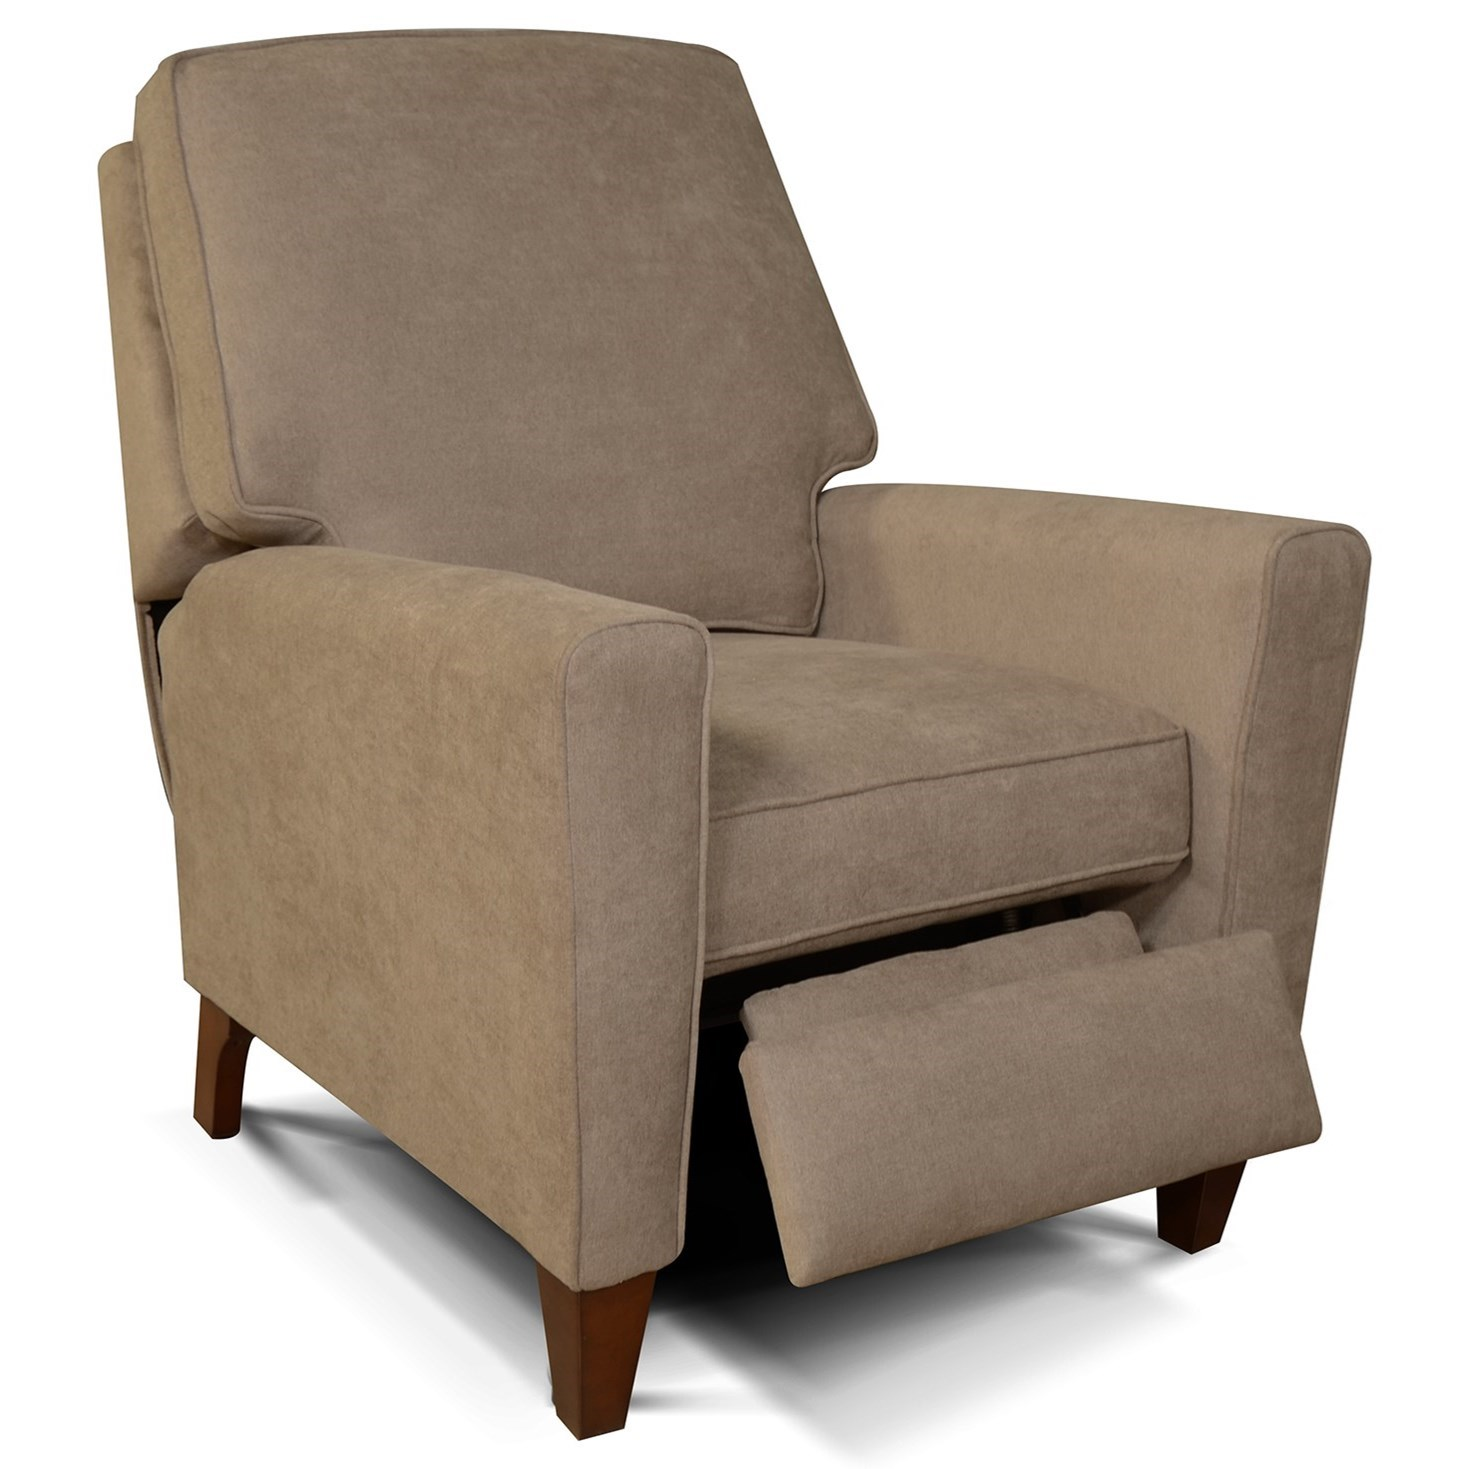 England Collegedale Living Room Motion Chair - Item Number: 6200-31